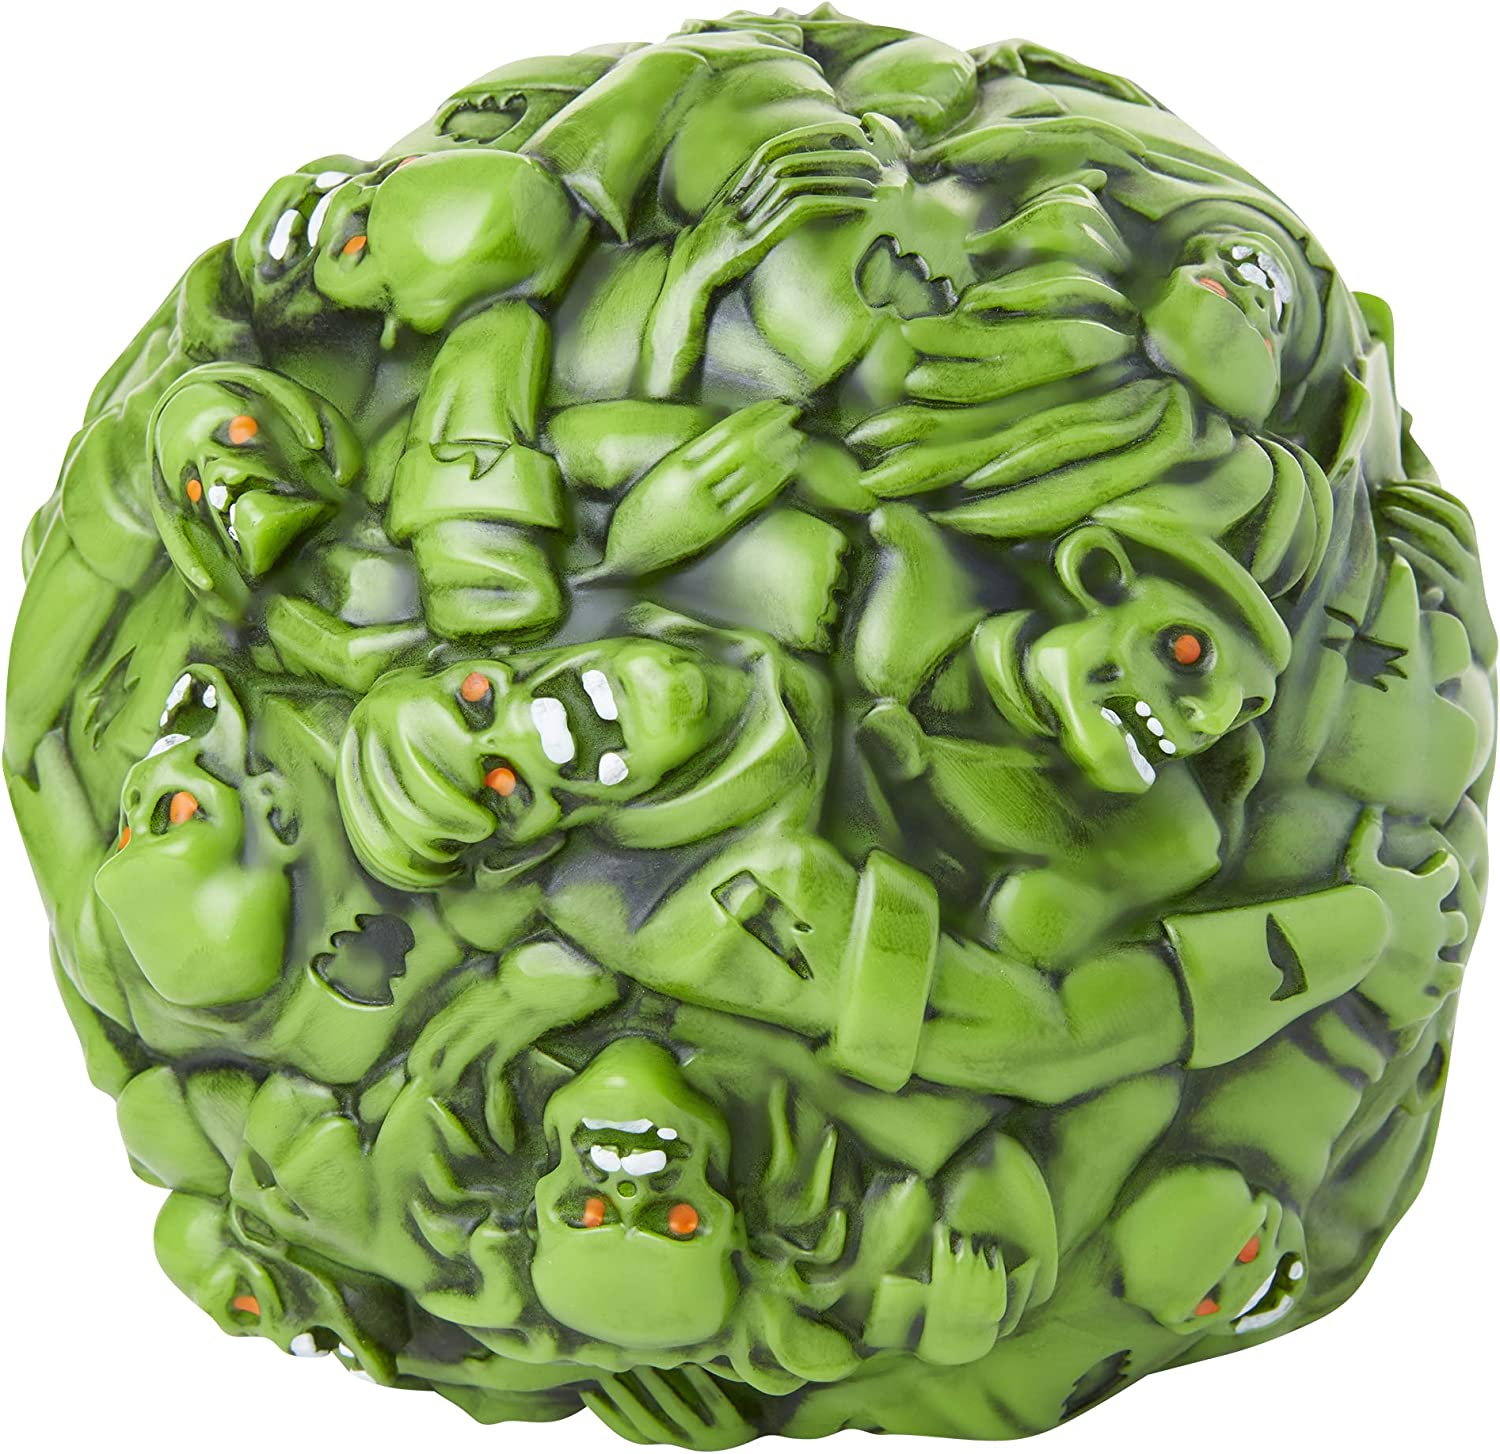 """The Last Kids On Earth - Zombie Ball 6"""" Roll or Shake to Hear Zombie Sounds! Includes Passing Game for 2 or More Players"""